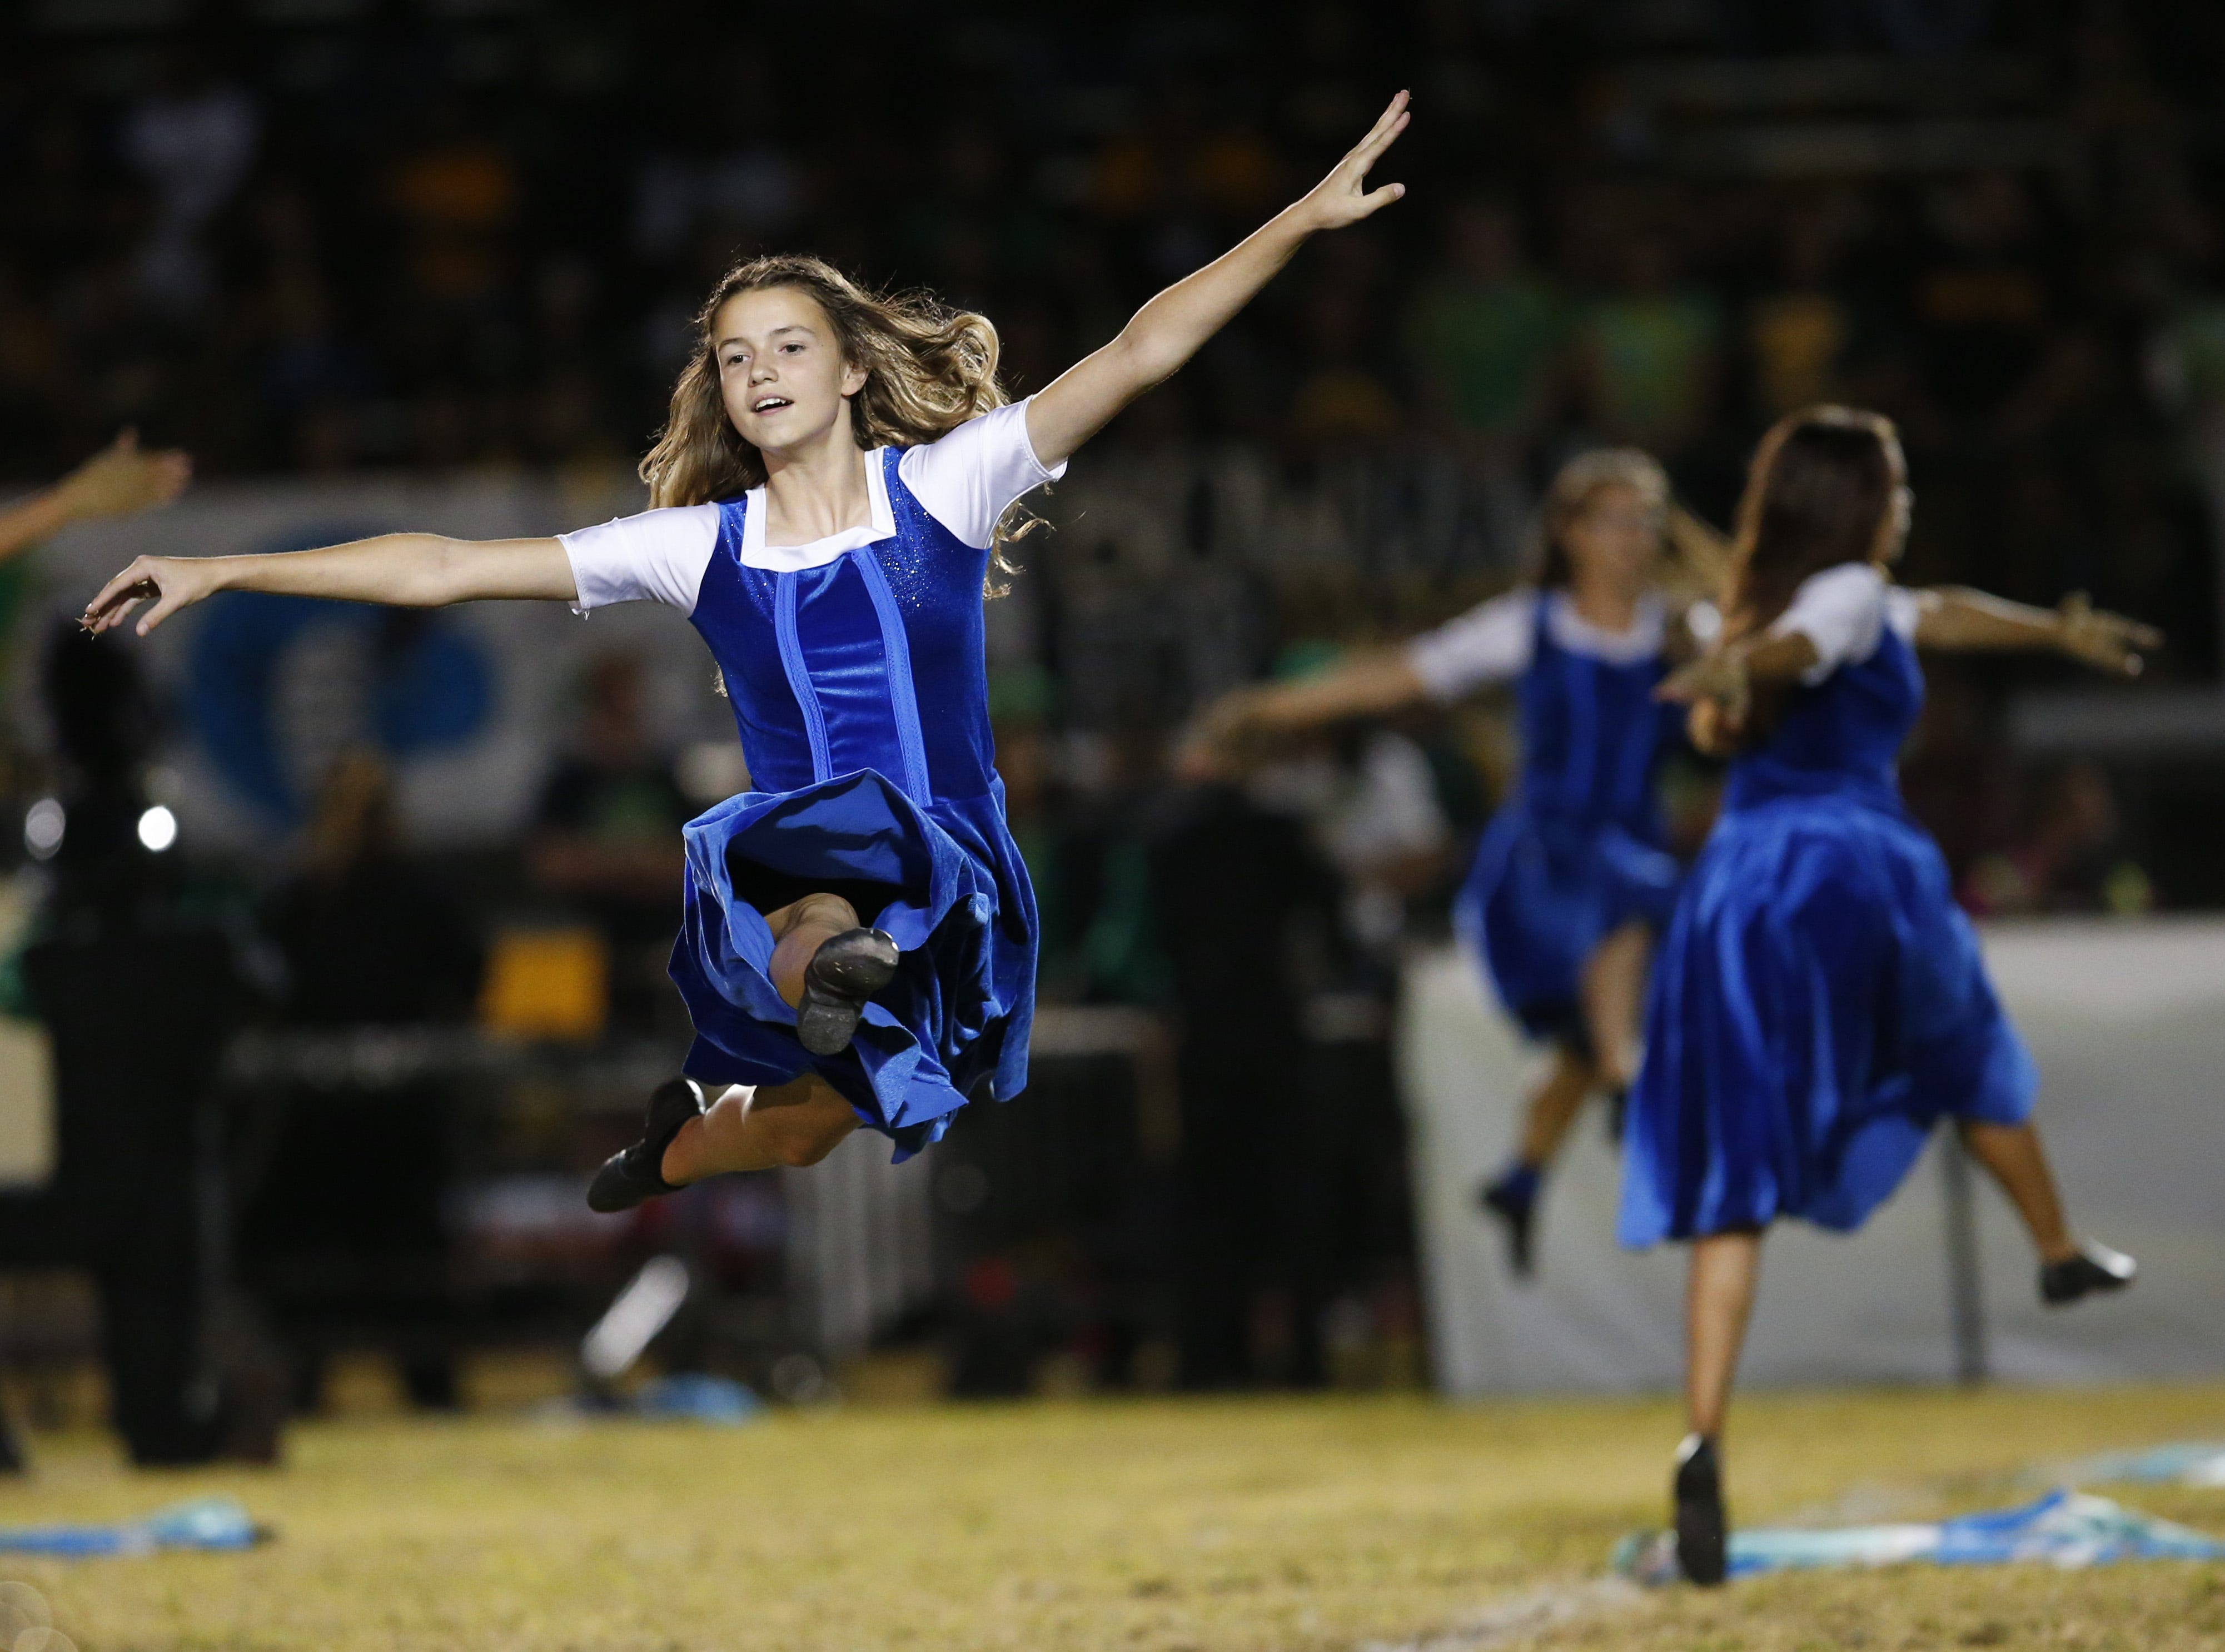 Peoria color guard, Phylicia Vance, performs during the half time show at a football game at Peoria High on October 26. #azhsfb